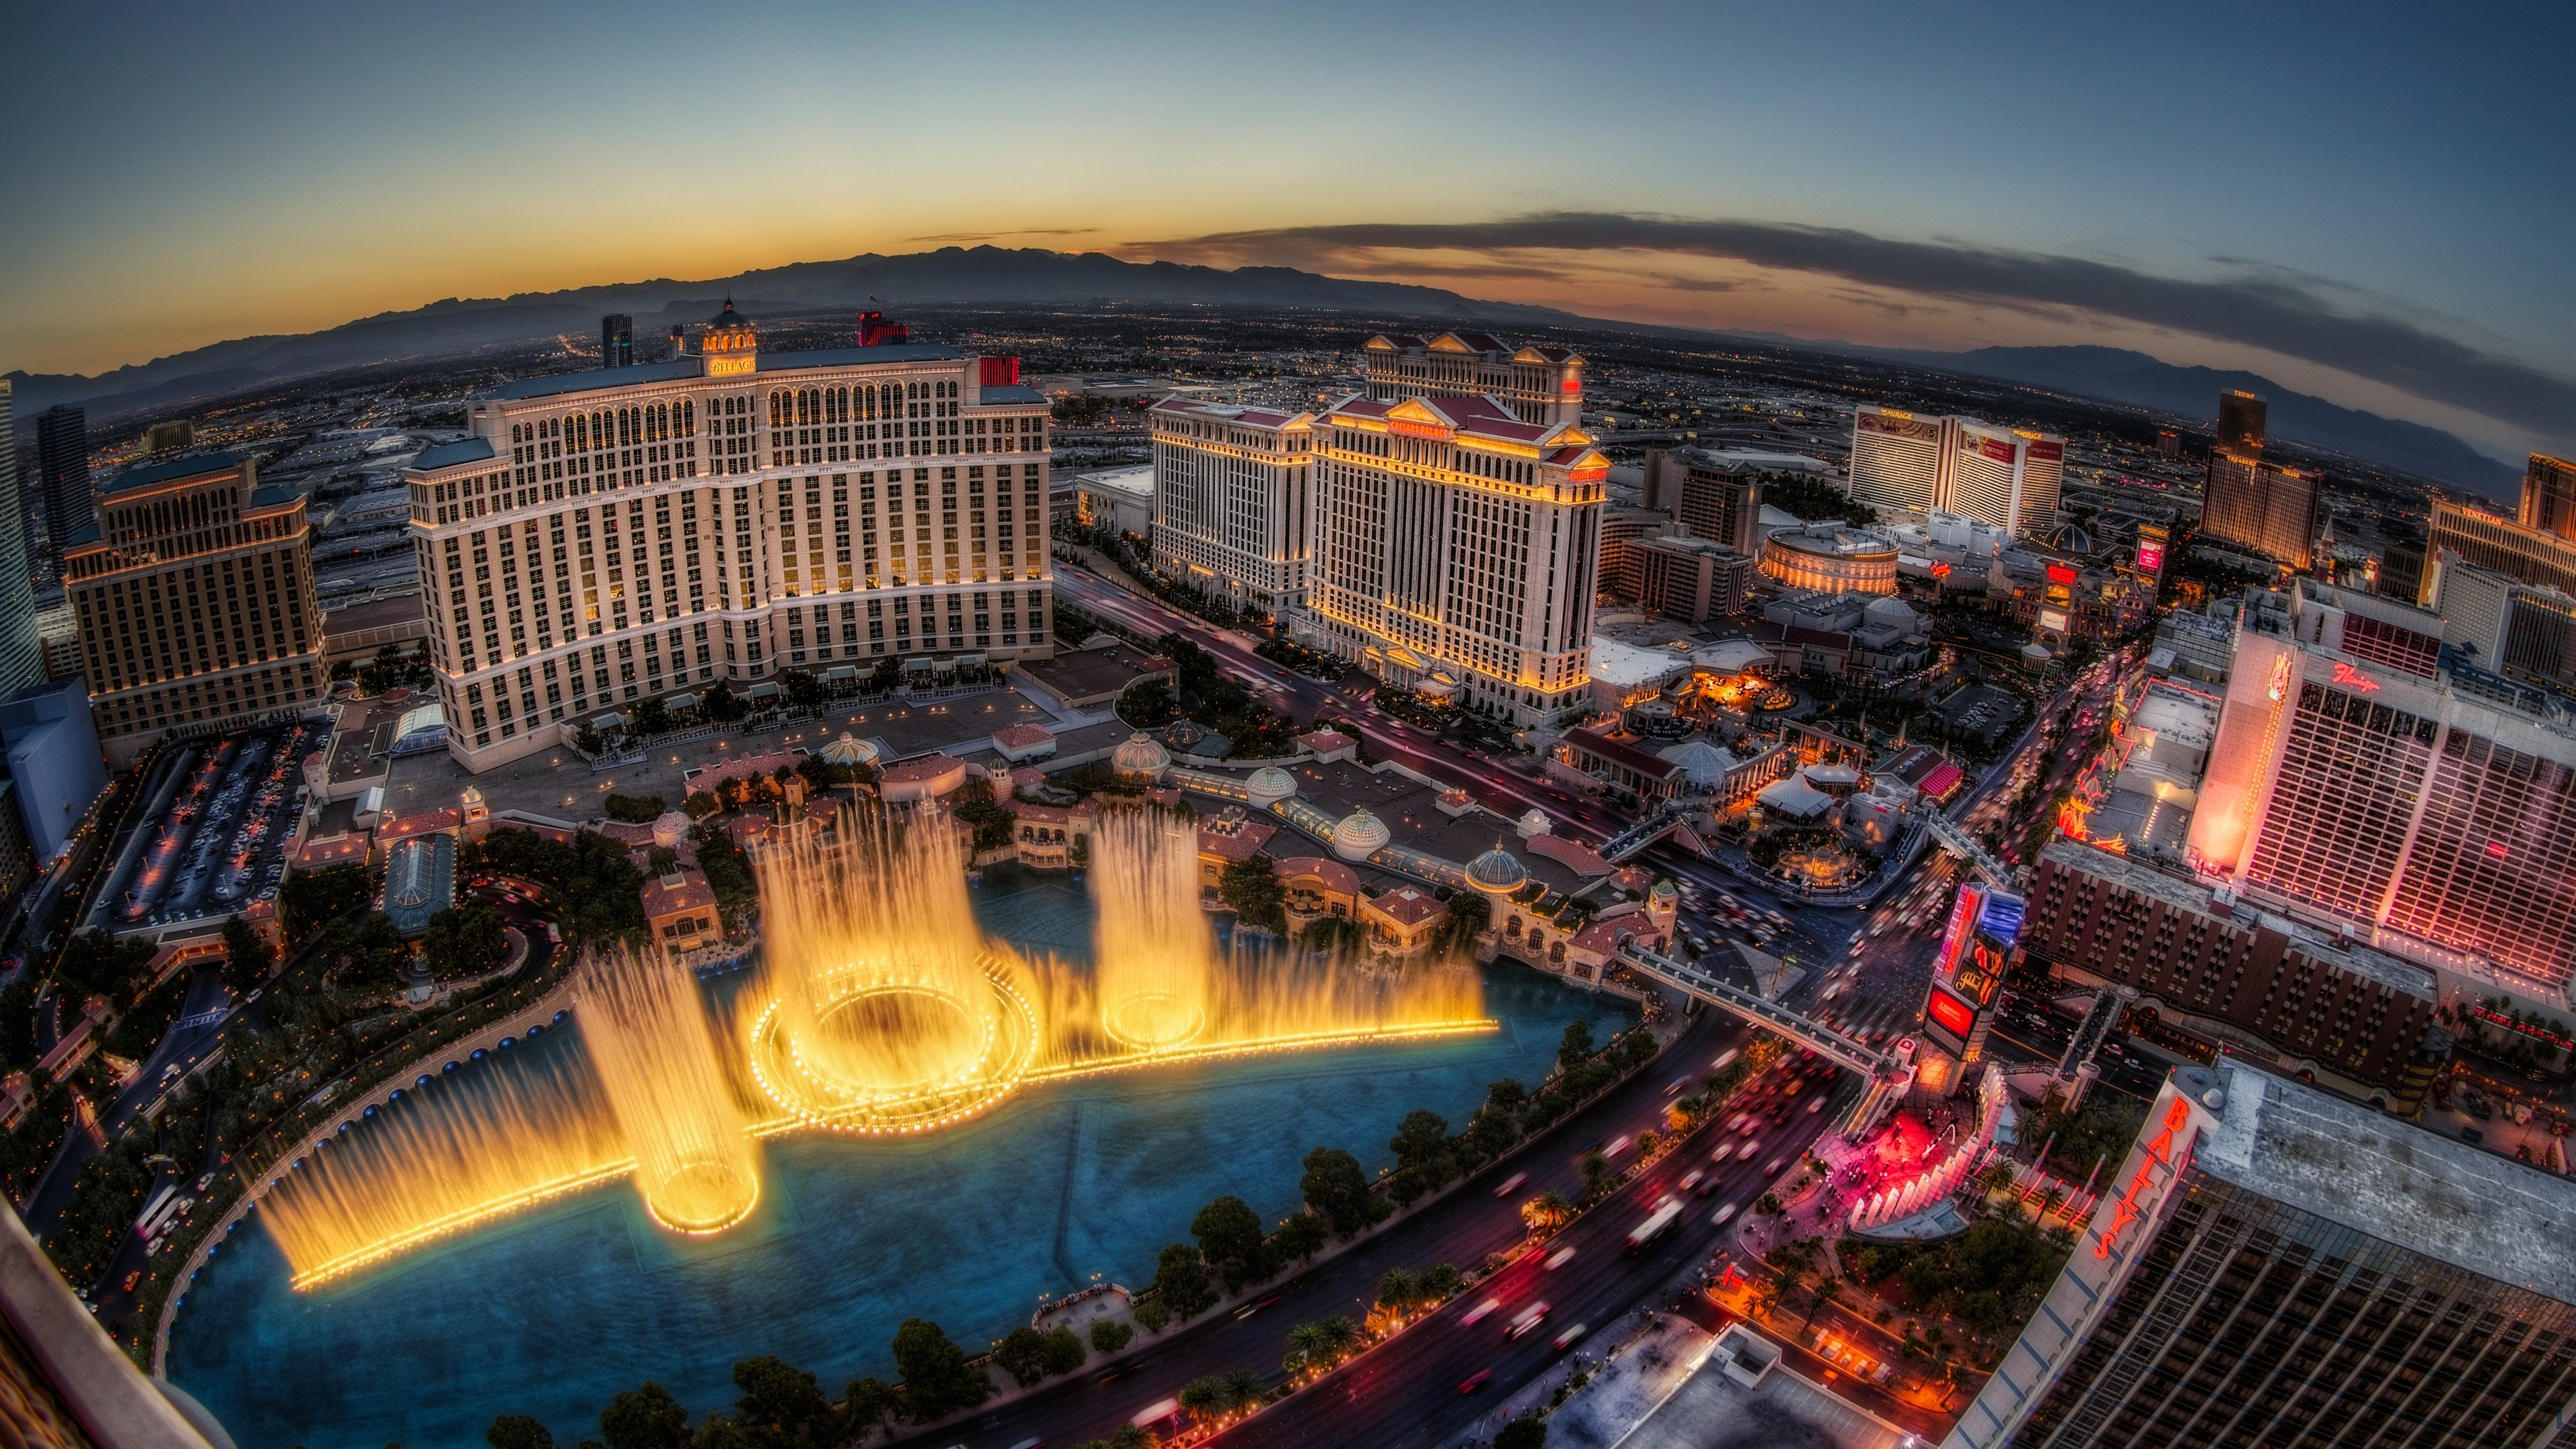 Las vegas hd world 4k wallpapers images backgrounds photos and pictures - Las vegas wallpaper 4k ...